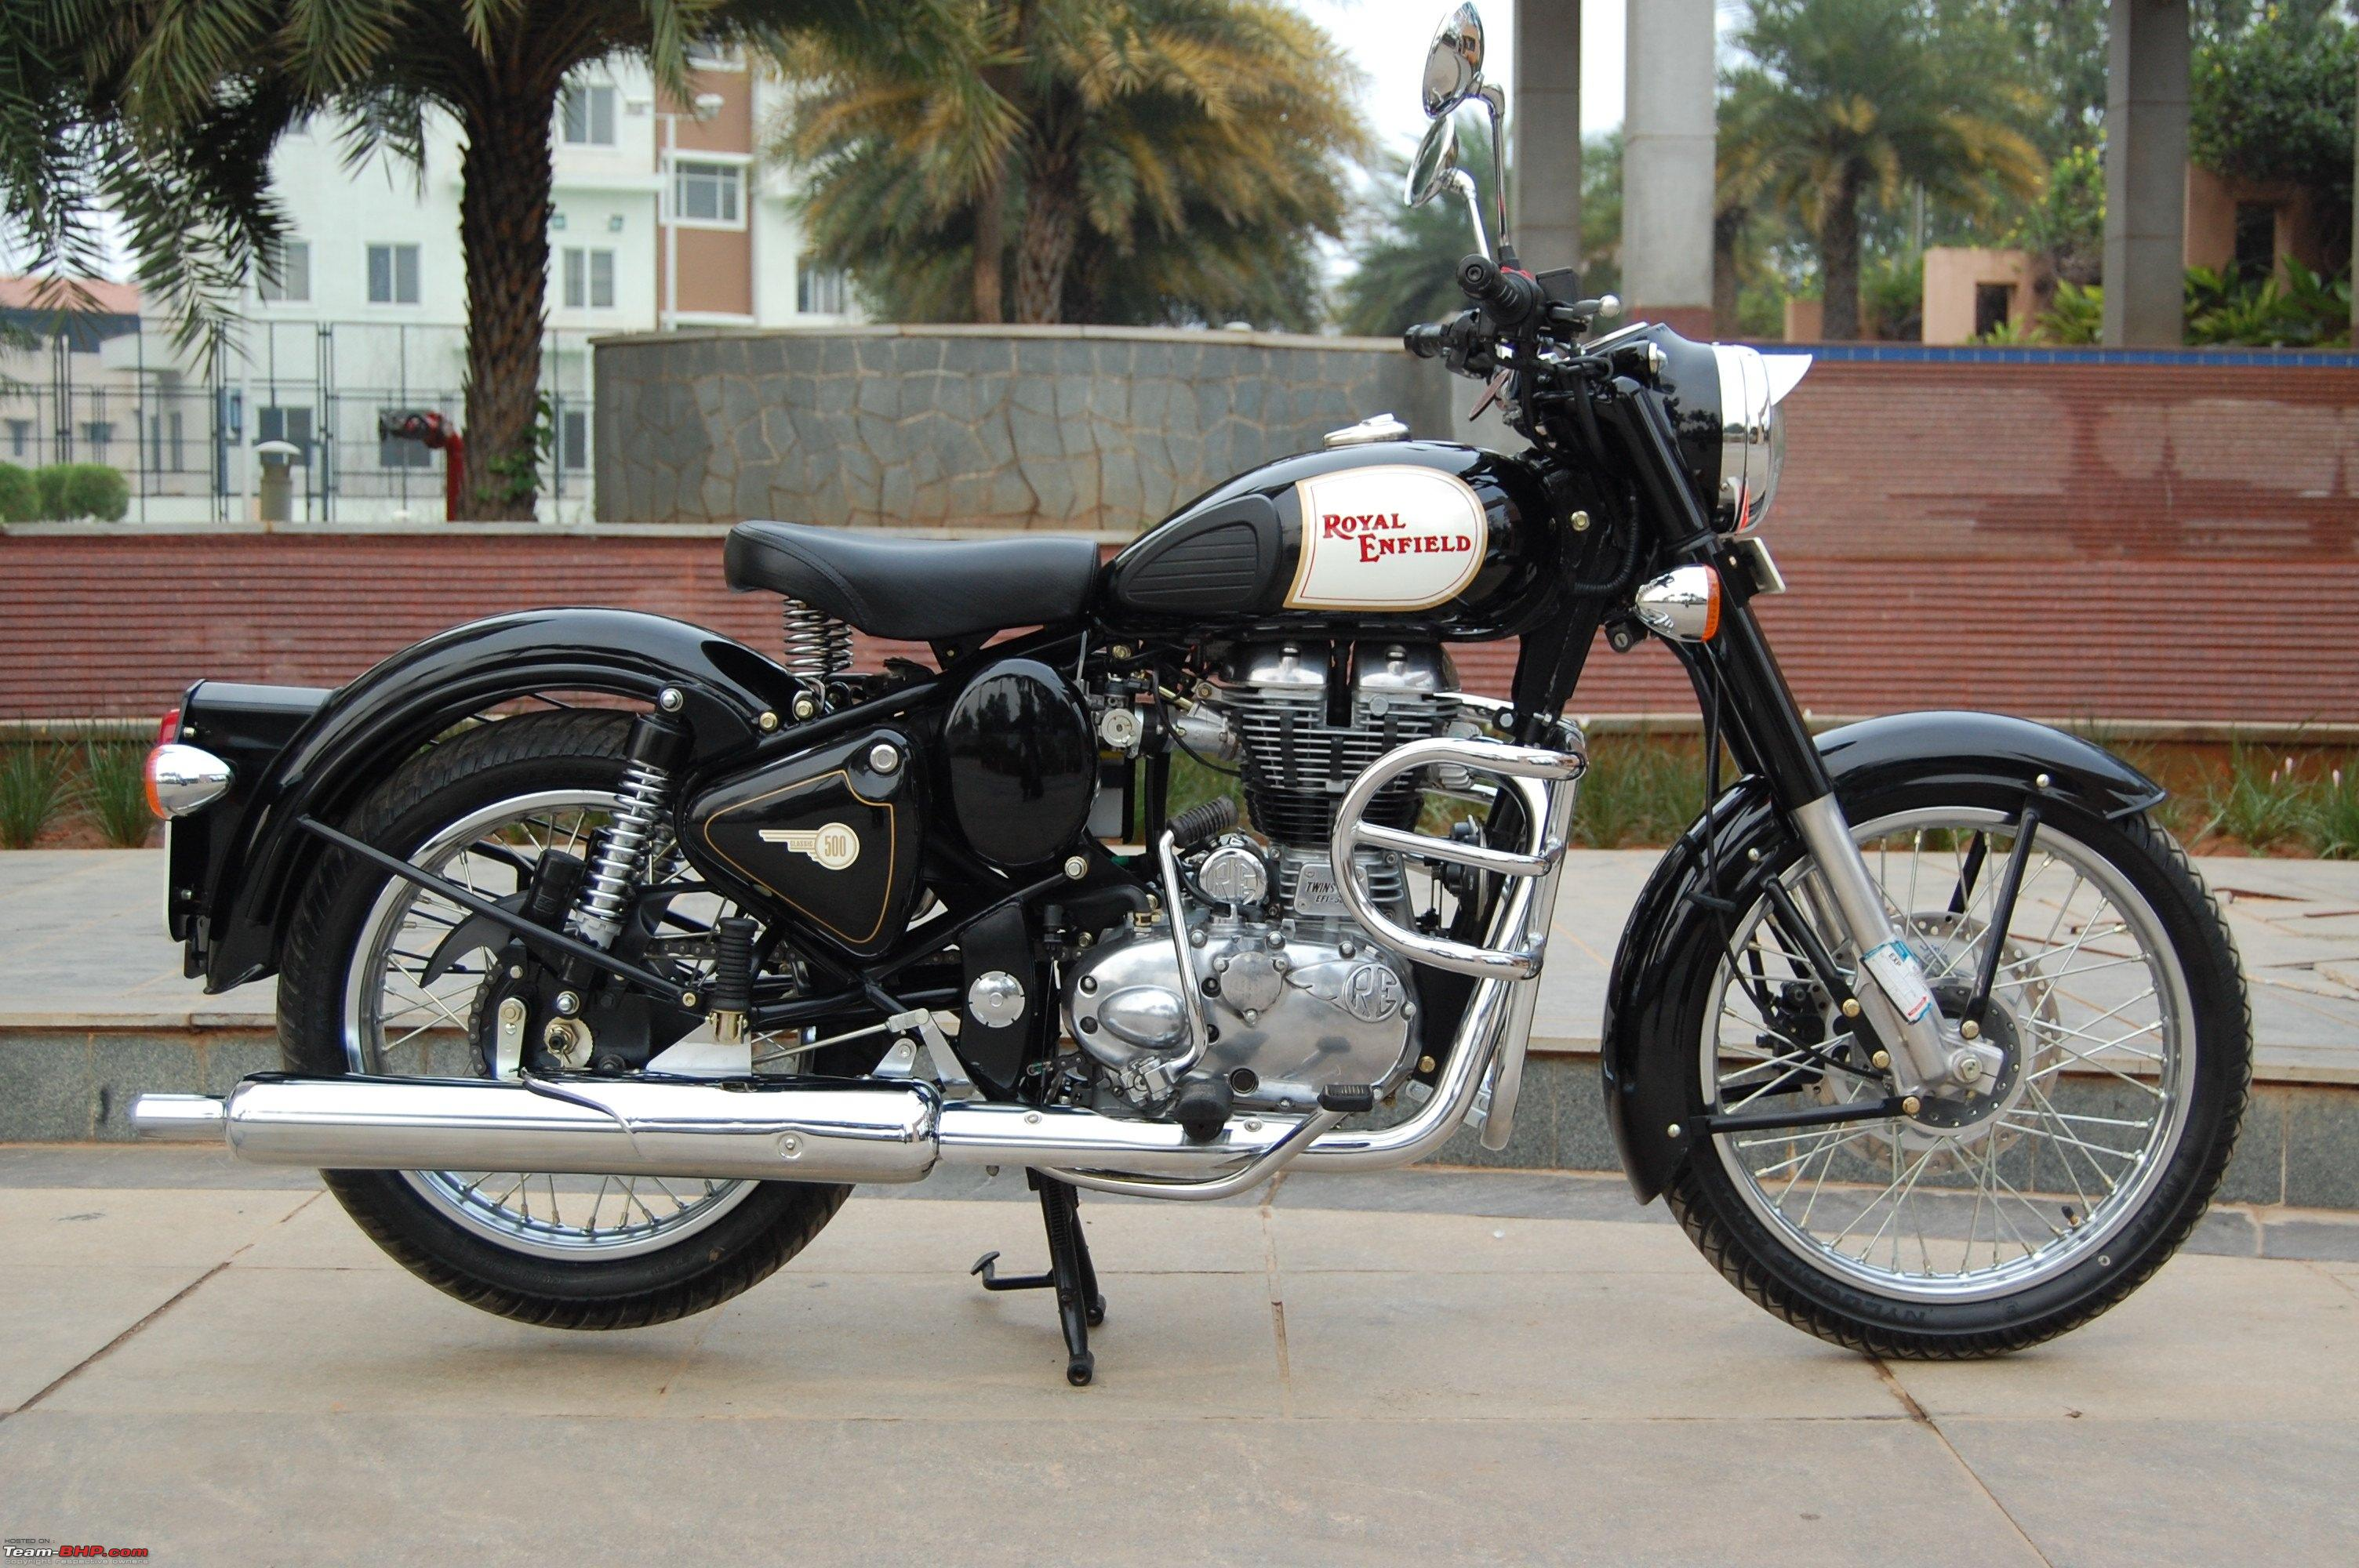 Enfield 500 Bullet (reduced effect) #11